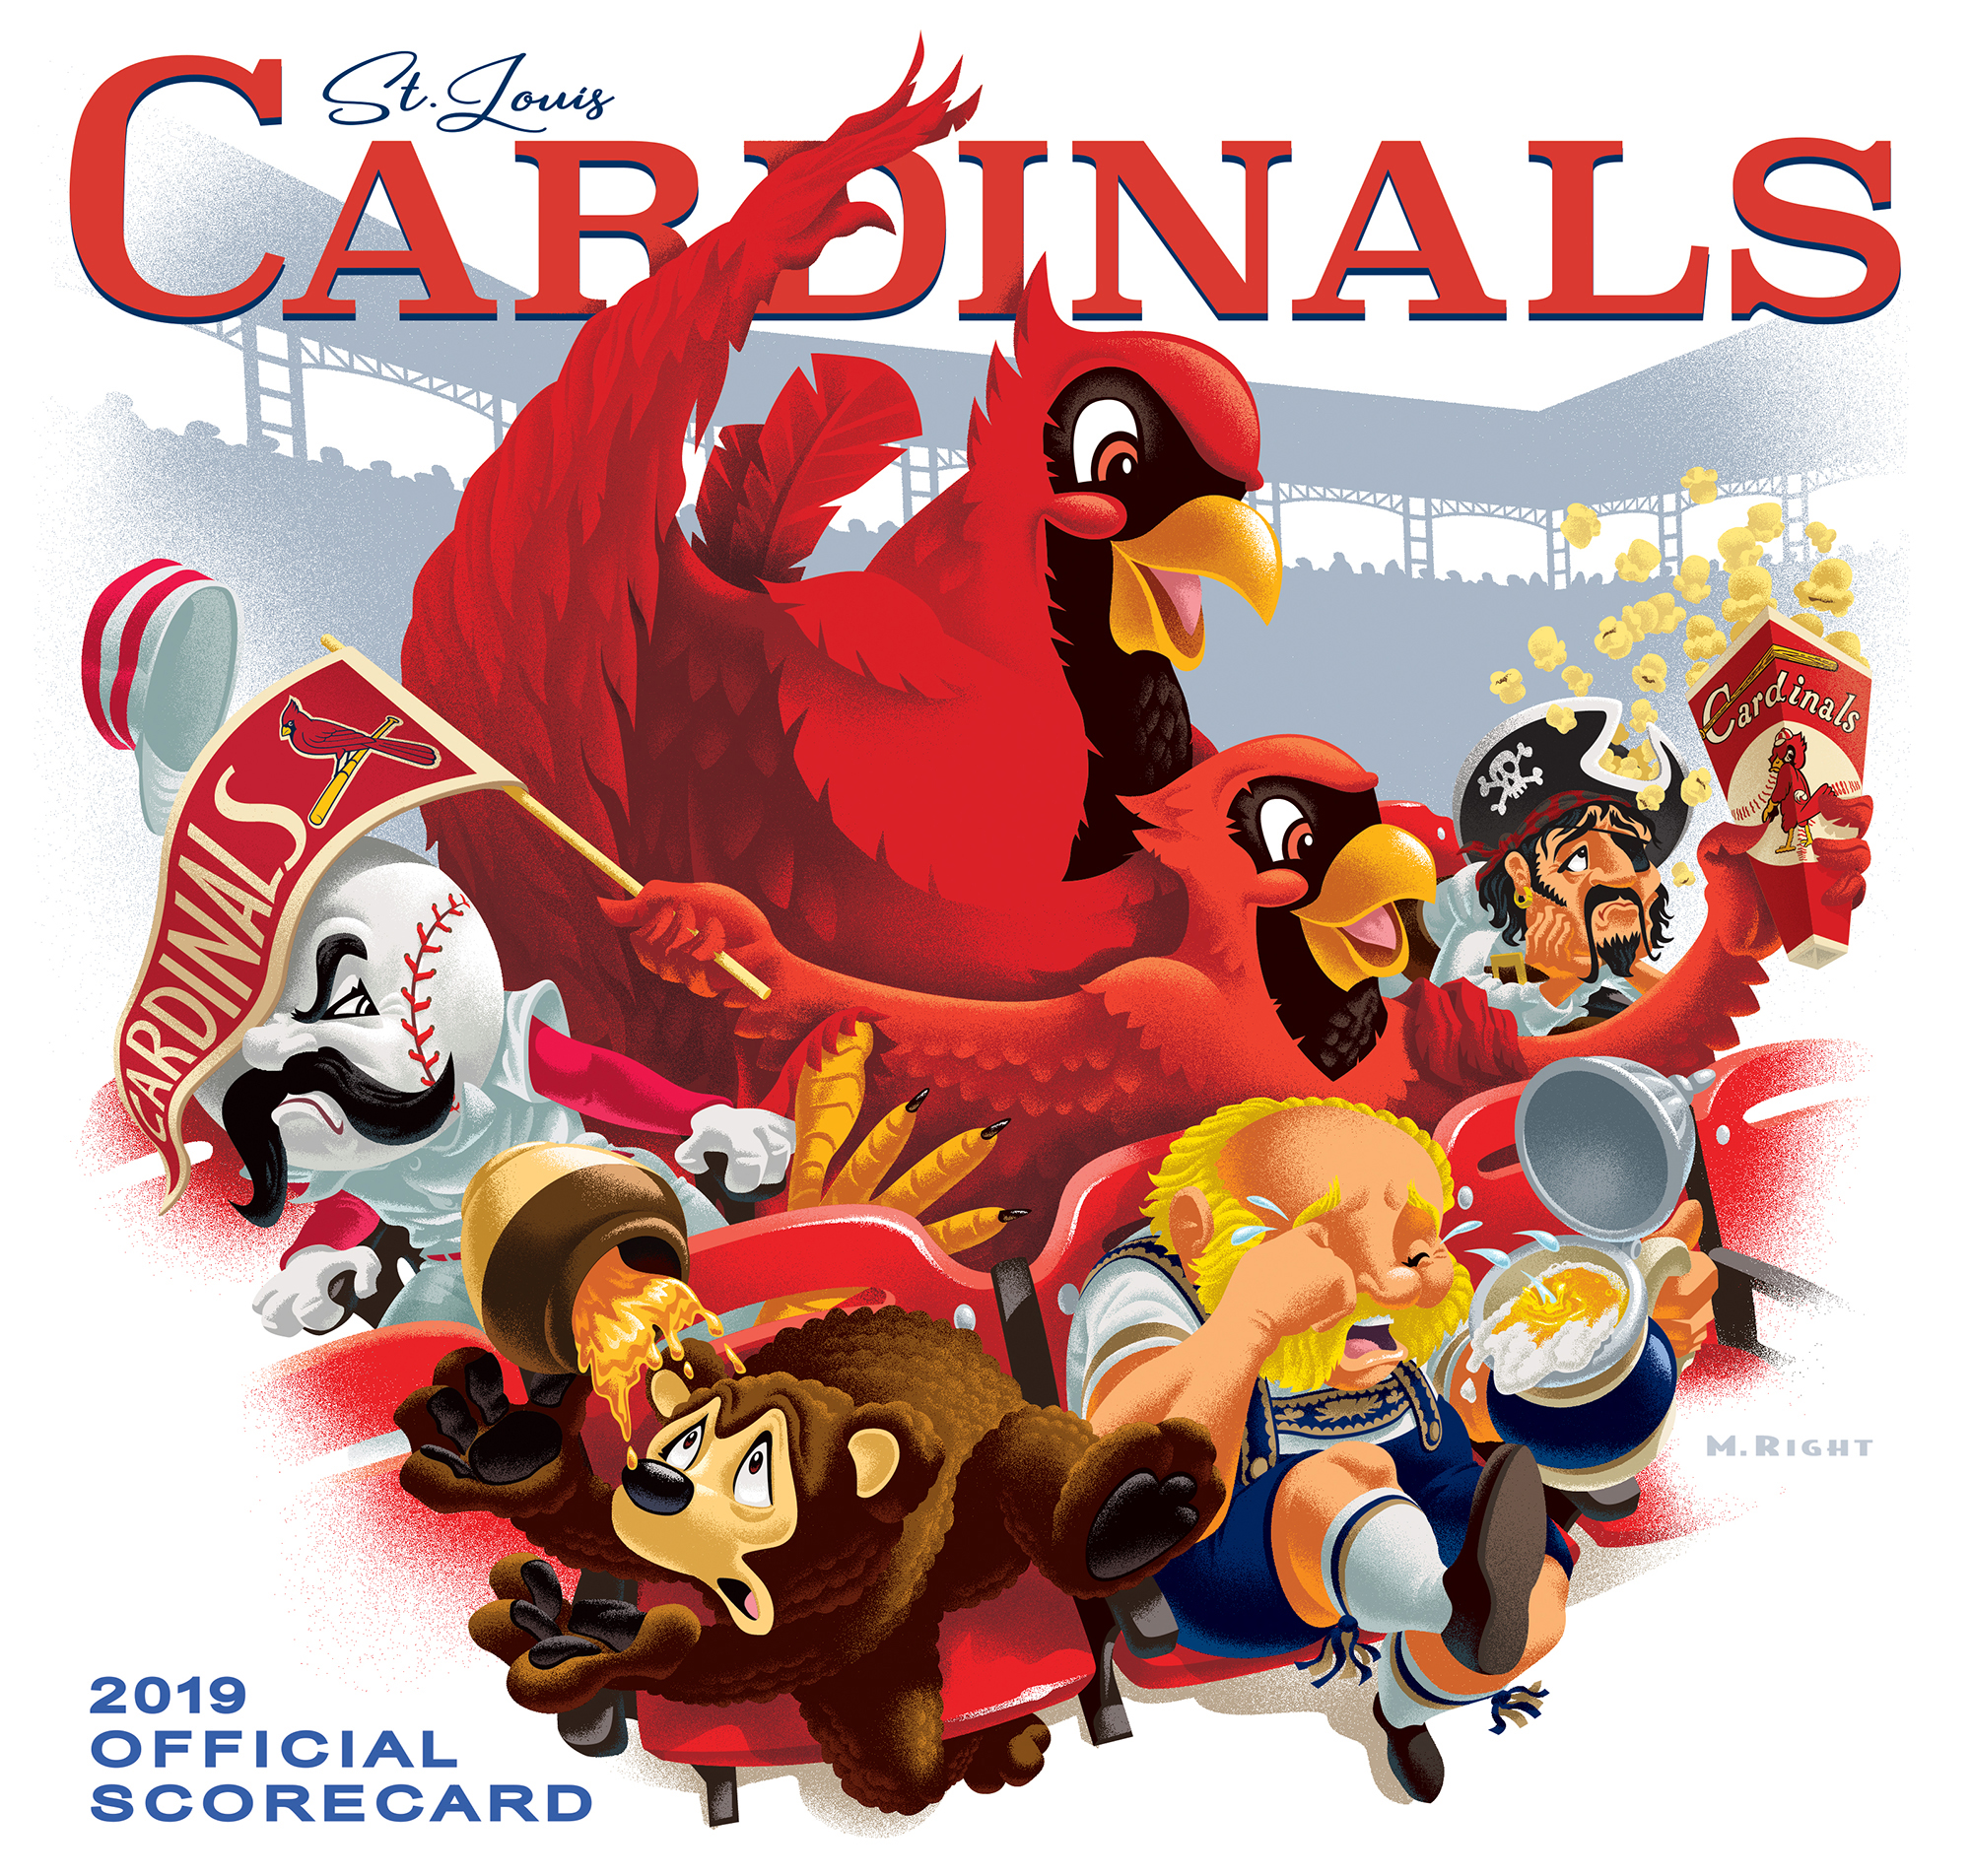 2019 Cardinals Official Scorecard